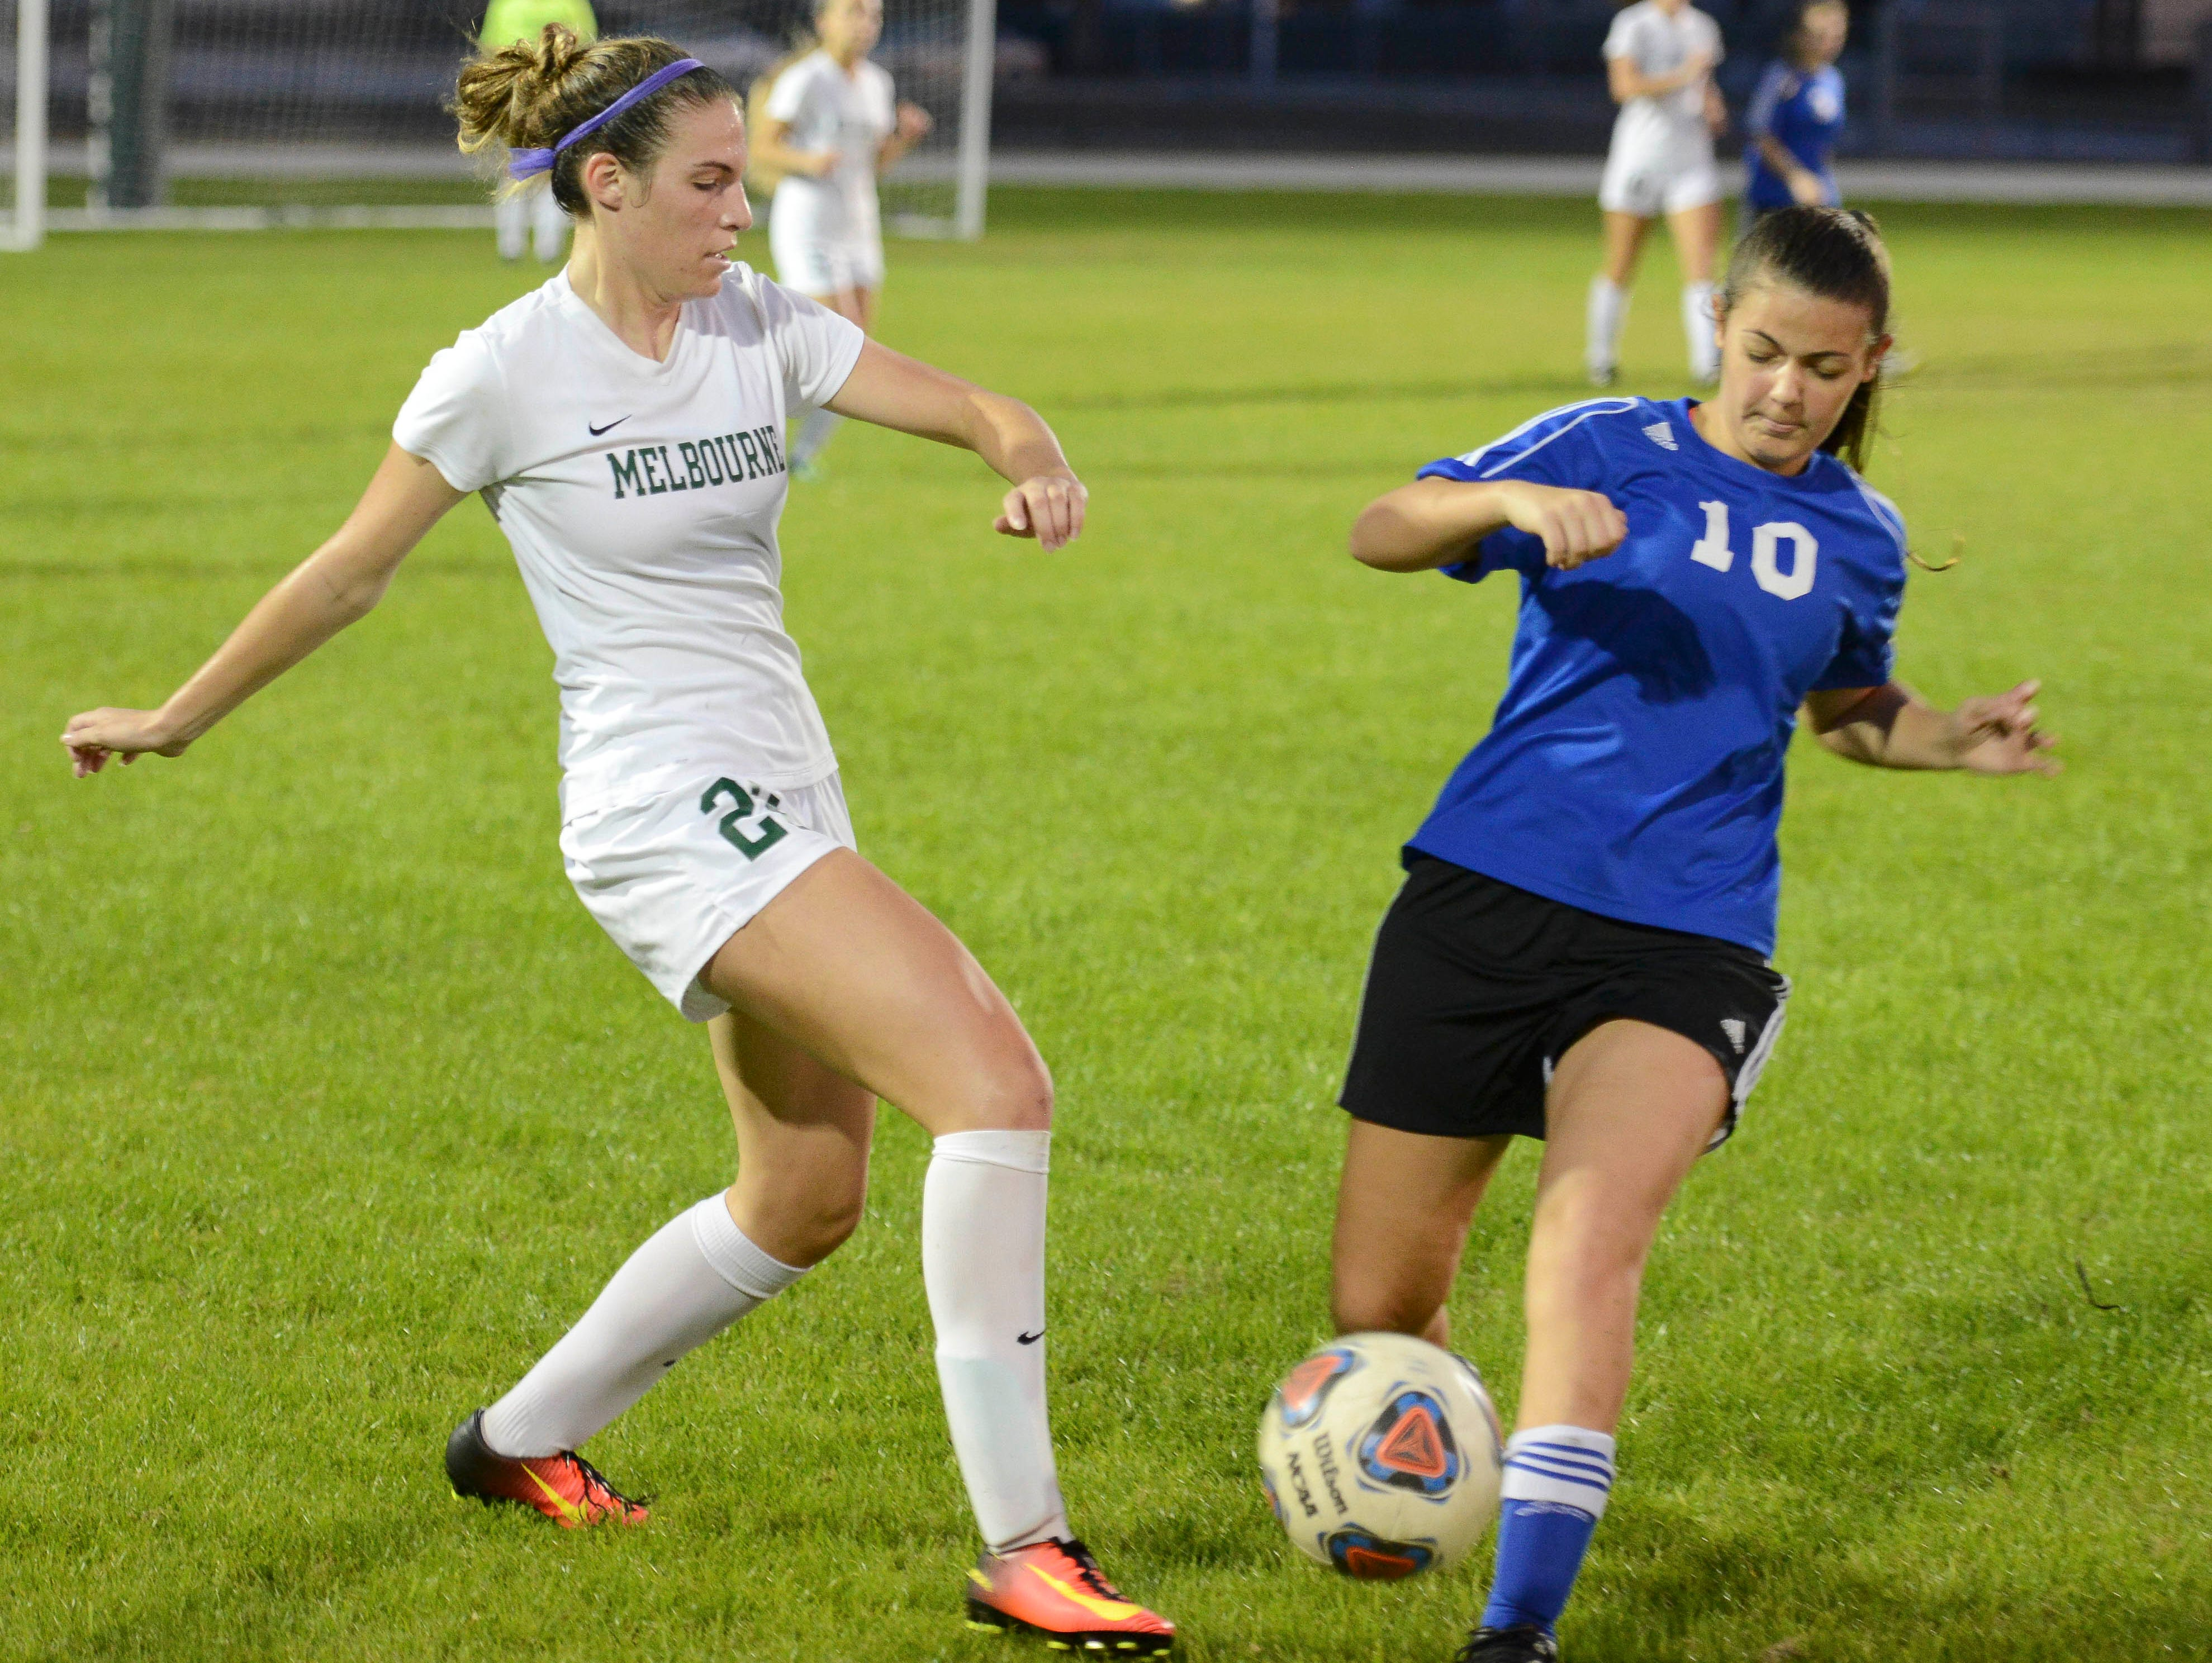 Melbourne's Haley Duff, pictured in the District 6-4A semifinal against Heritage, scored the only goal in Friday's district title win over Viera.